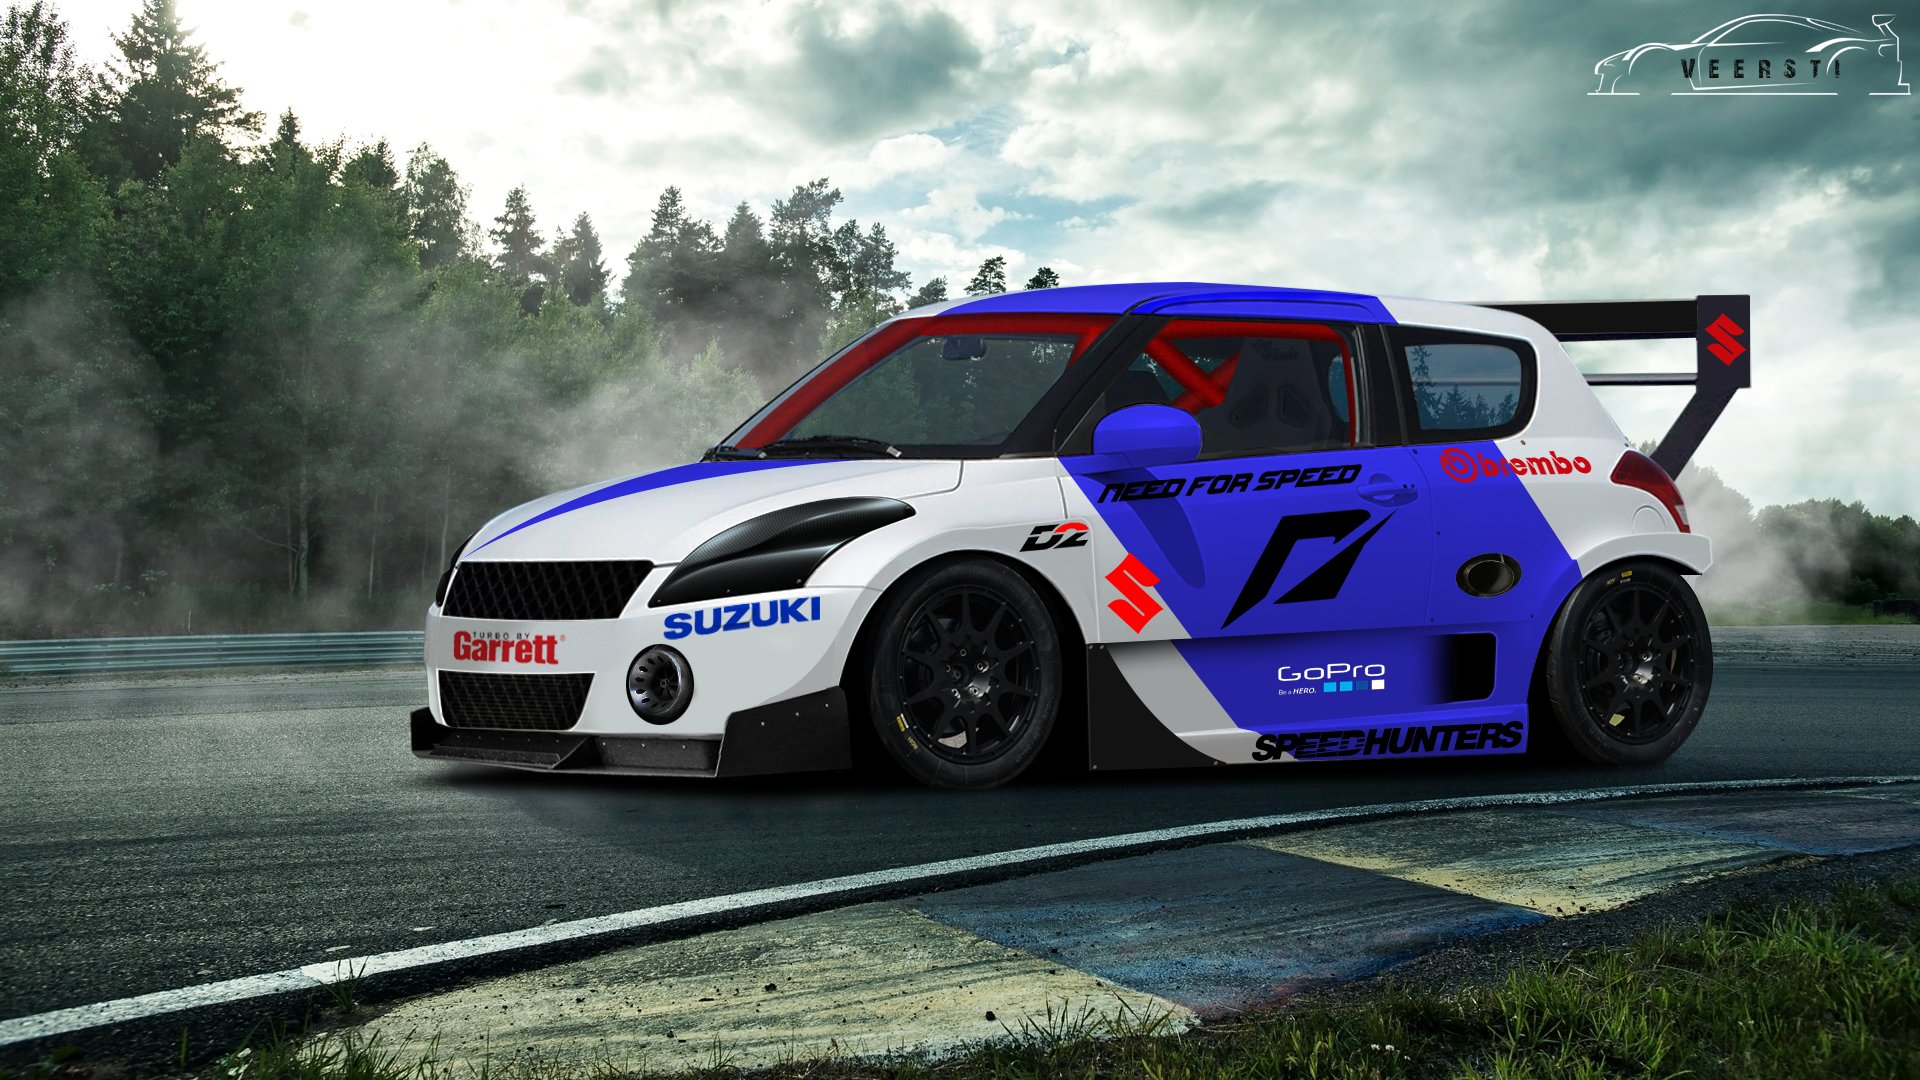 20a603ddd9ced ArtStation - Suzuki Swift Racing Concept